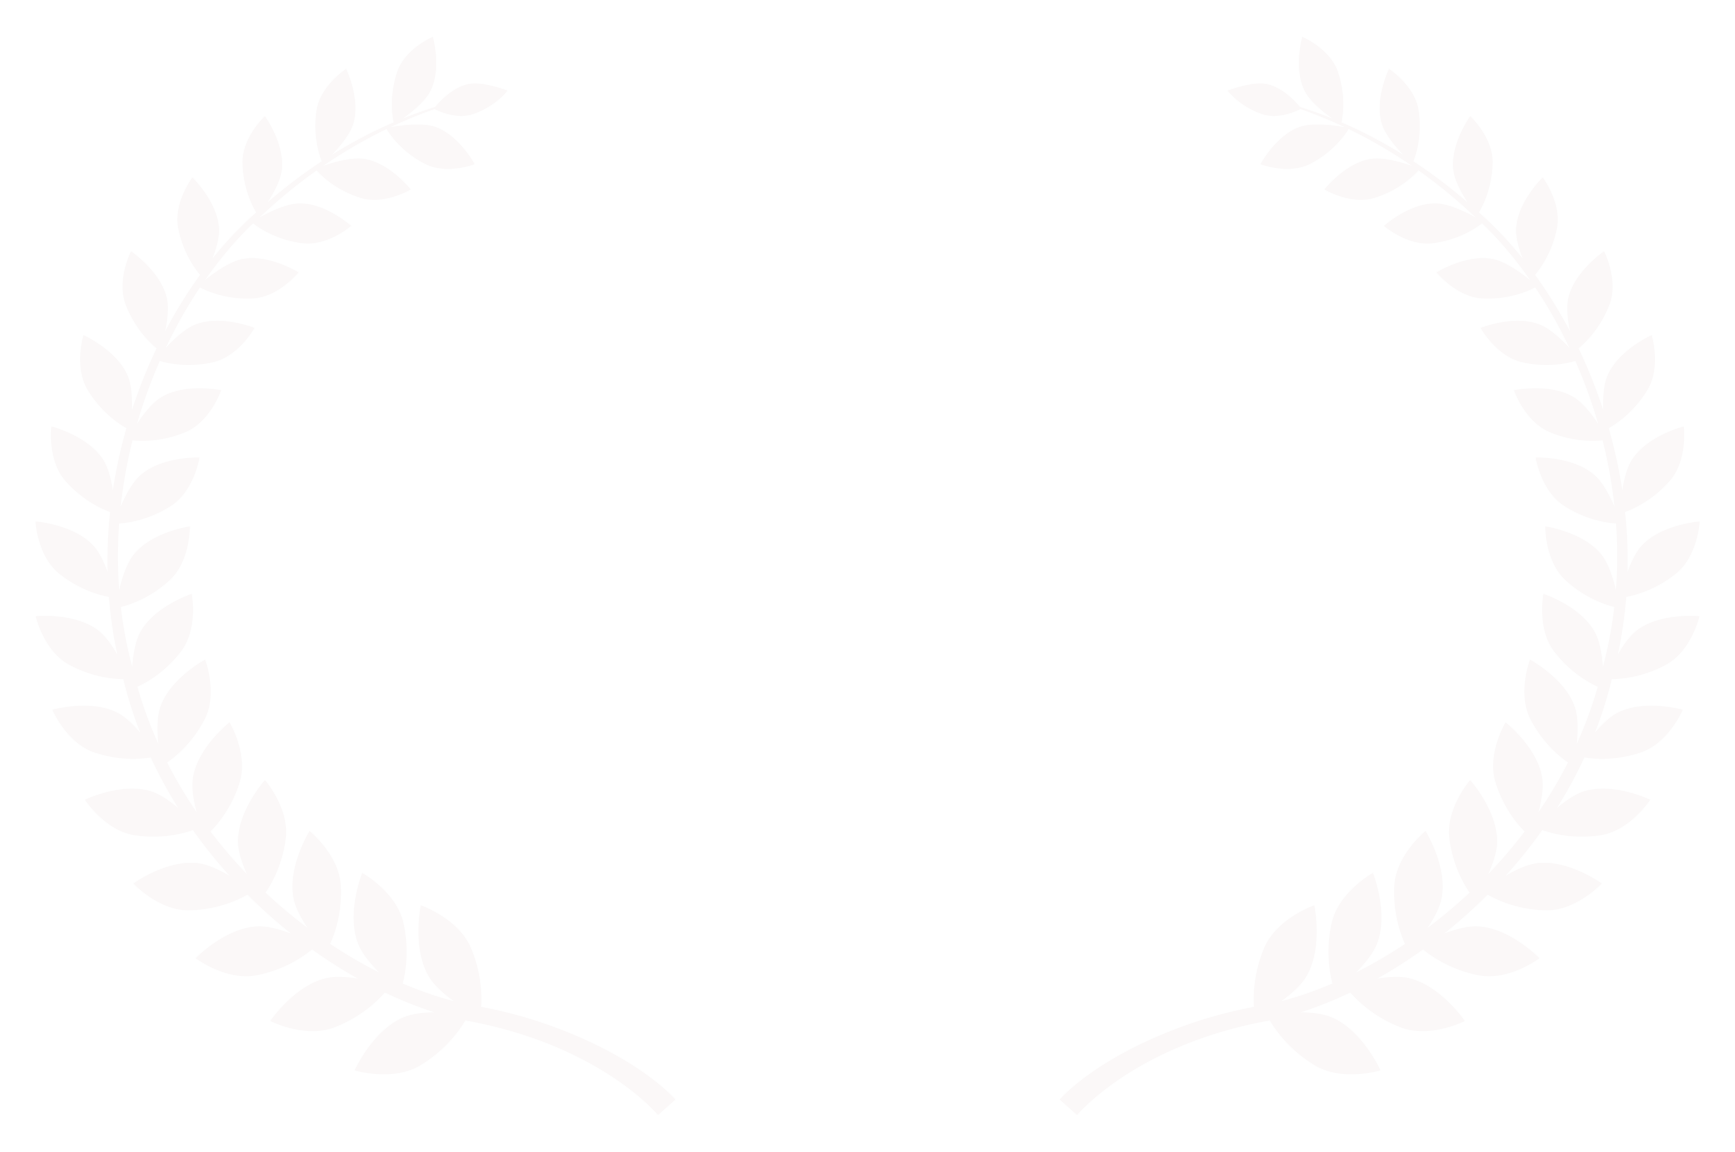 OFFICIAL SELECTION - The Best of the Bes